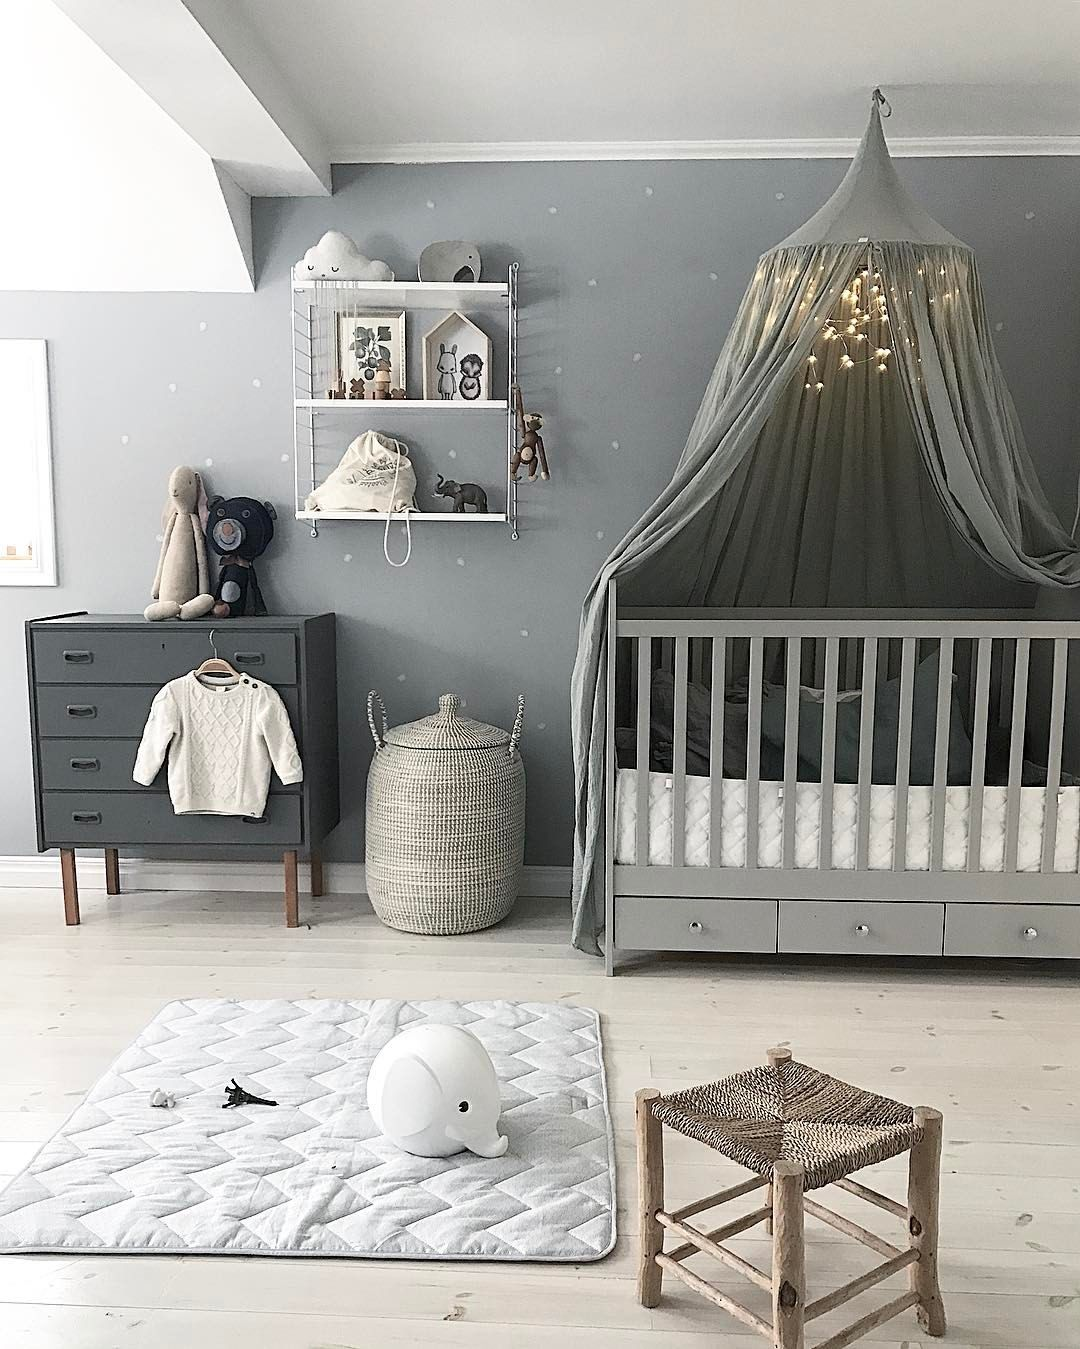 Baby Rooms Ideas Unisex Girl Themes Ideas Decals Boy Neutral Organization Colors Layout Design DIY  Decor Rustic Furniture Unisex Combo Montessori Twins Green Art Paint  Shelves ...